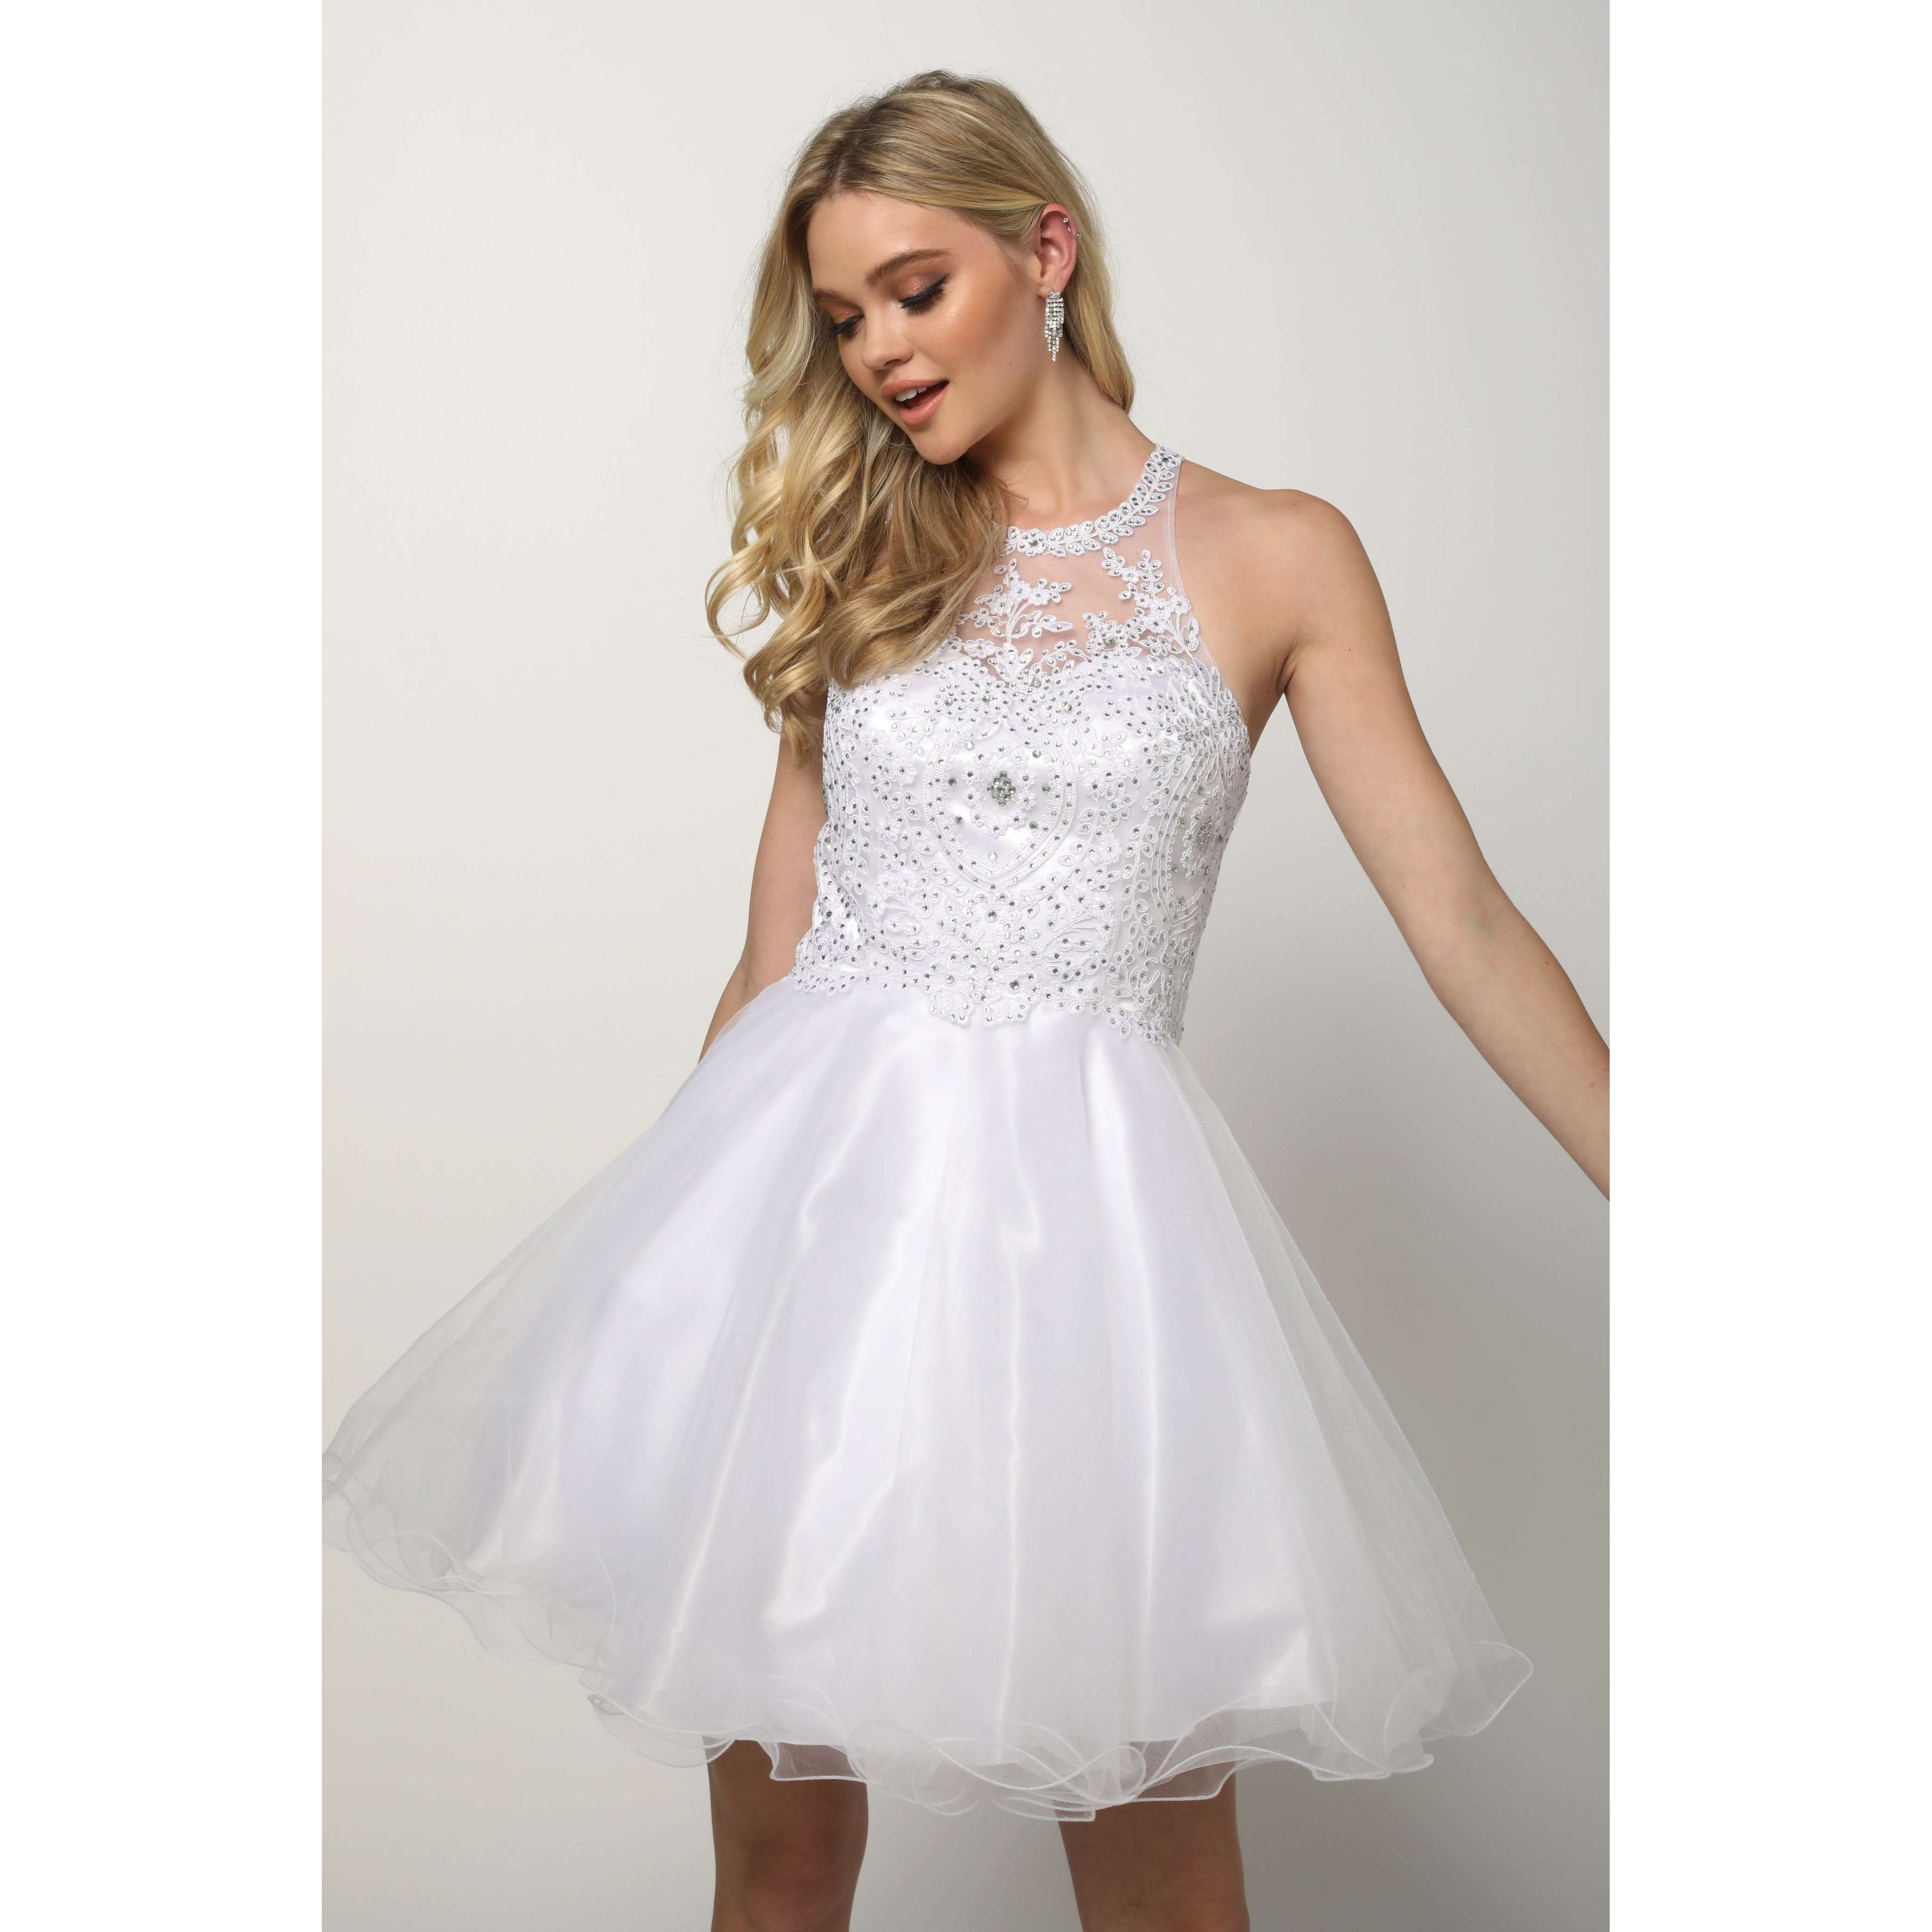 Fit-and-Flare Halter Nack White Dress 826W - Julietdresses